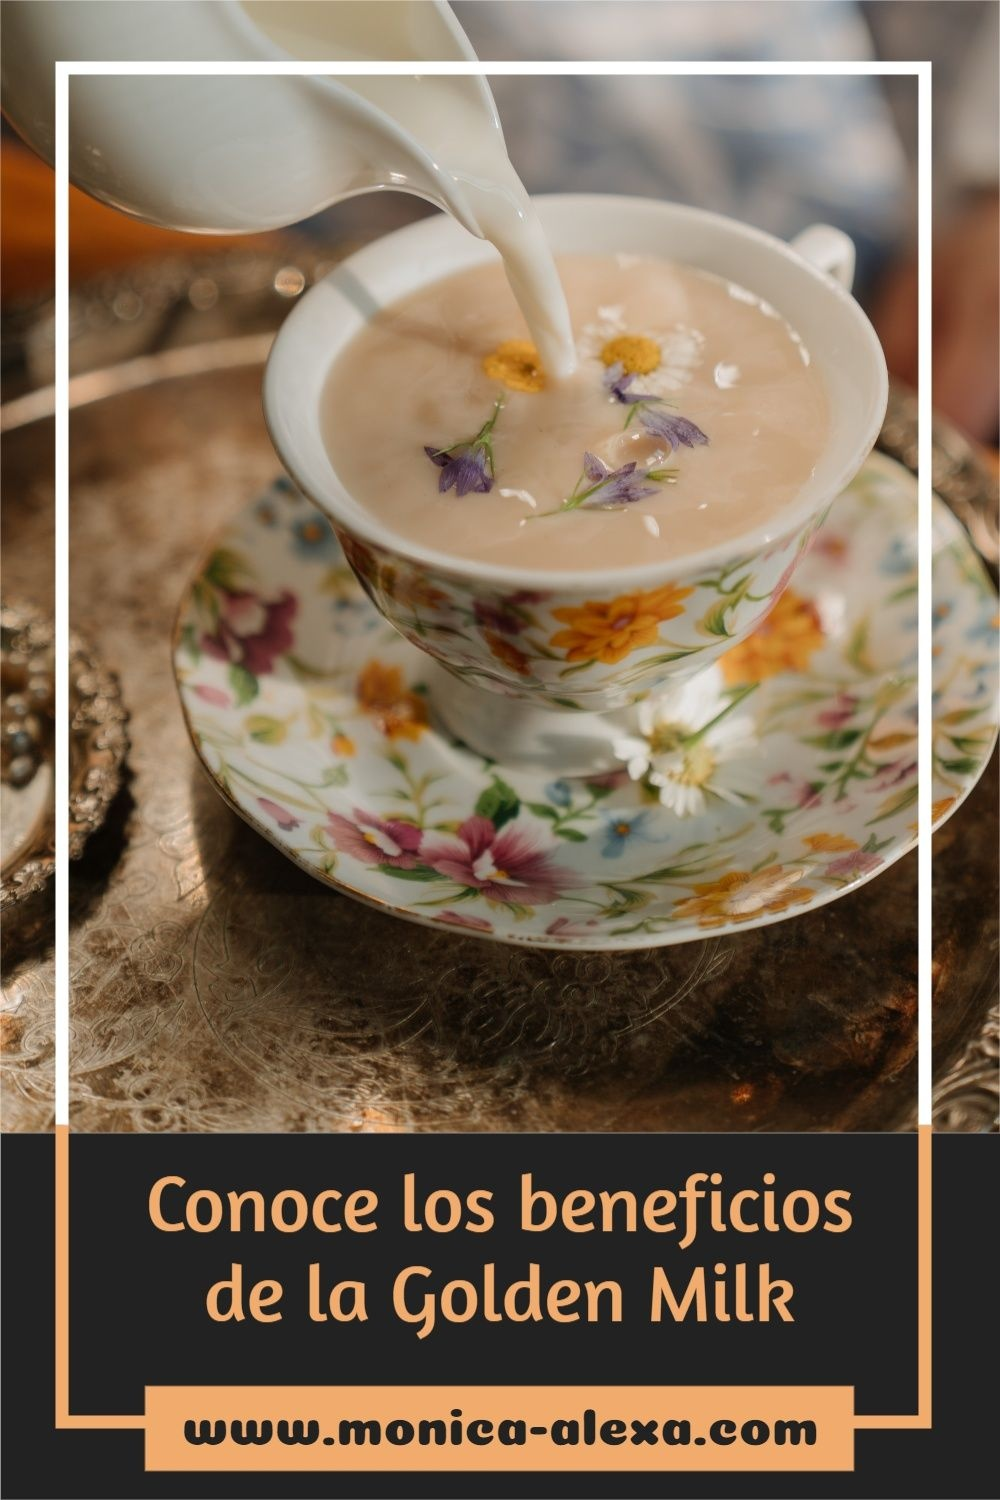 Food and drink Pinterest Pin image created by Mónica using a Tailwind Create design template in 2021.